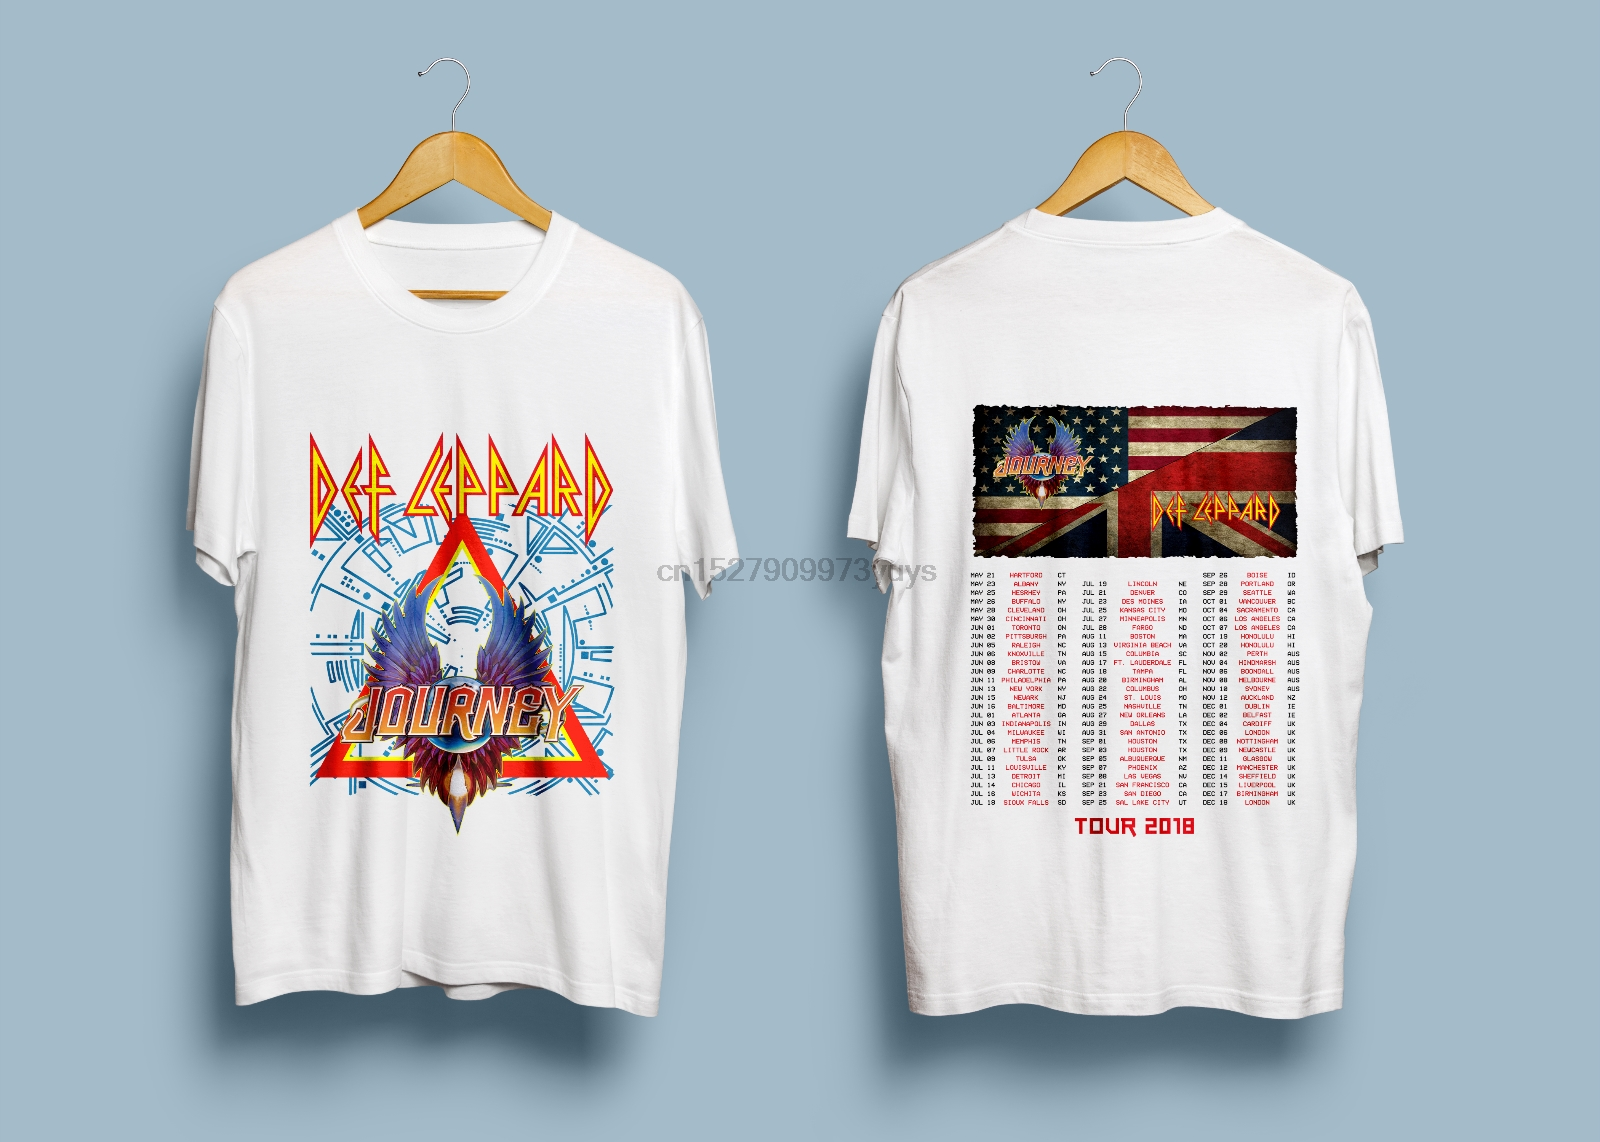 Dif Leppad & Journey Tour 2018 T-Shirt